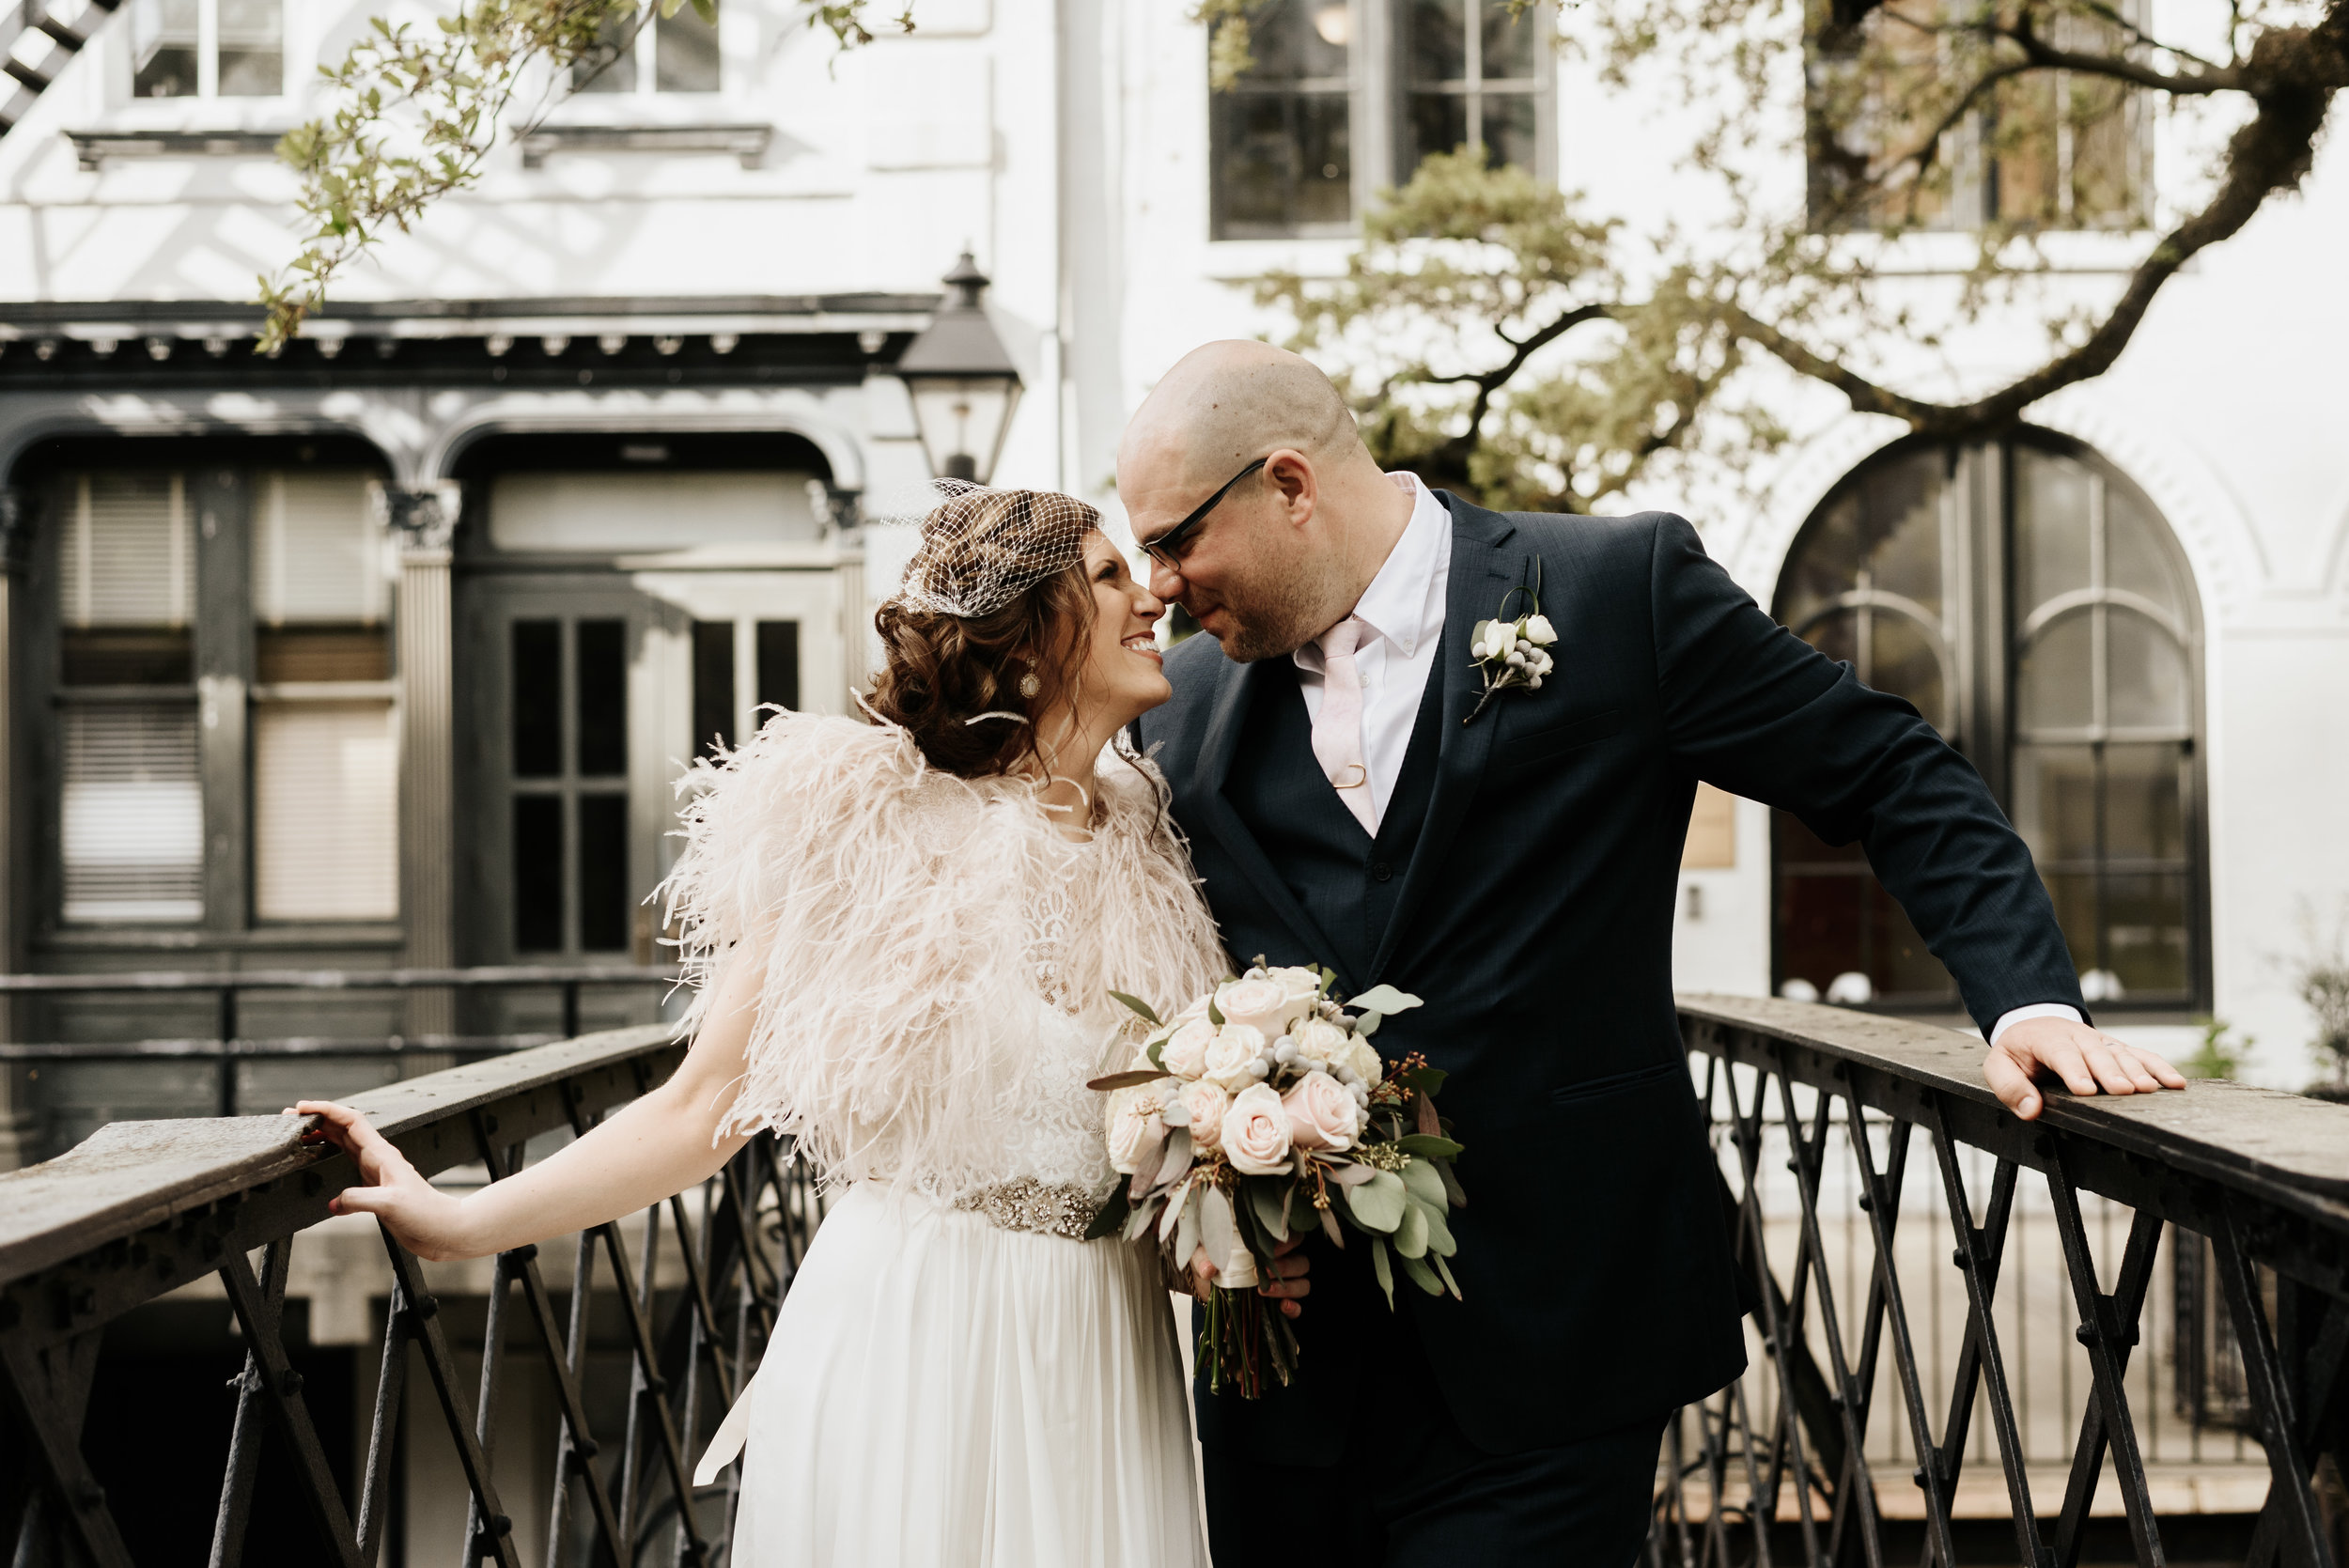 Juli-Derek-Wedding-Previews-8966.jpg